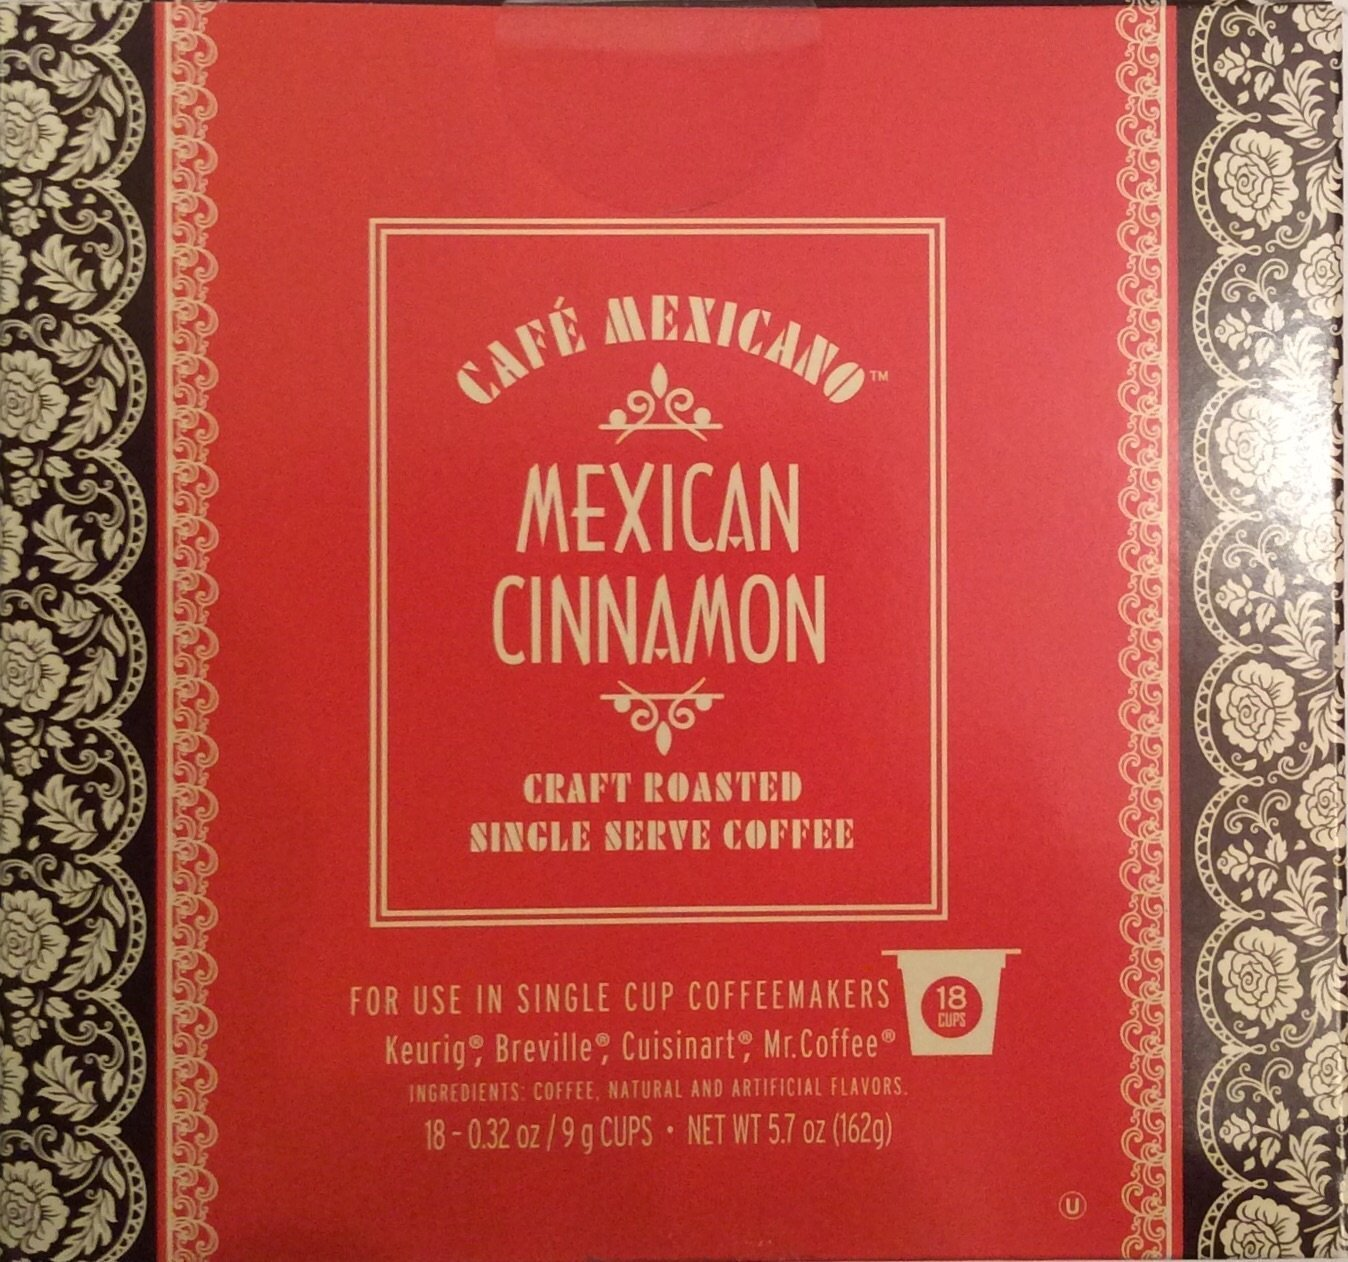 Cafe Mexicano Mexican Cinnamon Craft Roasted Single Serve Coffee 18 Cups, Red and Brown